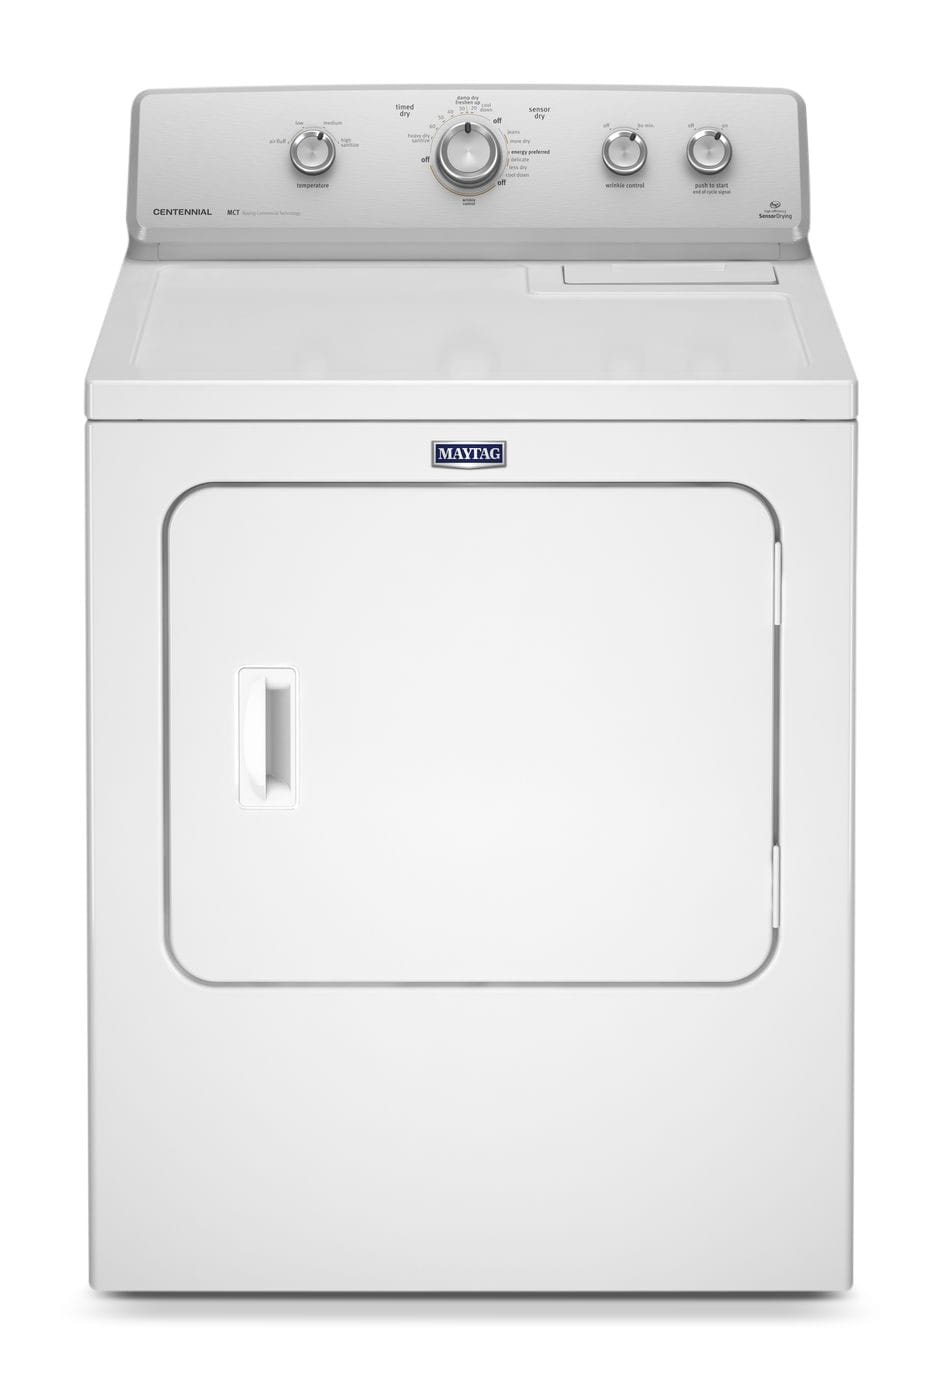 Maytag Dryer (7.0 Cu. Ft.) YMEDC415EW